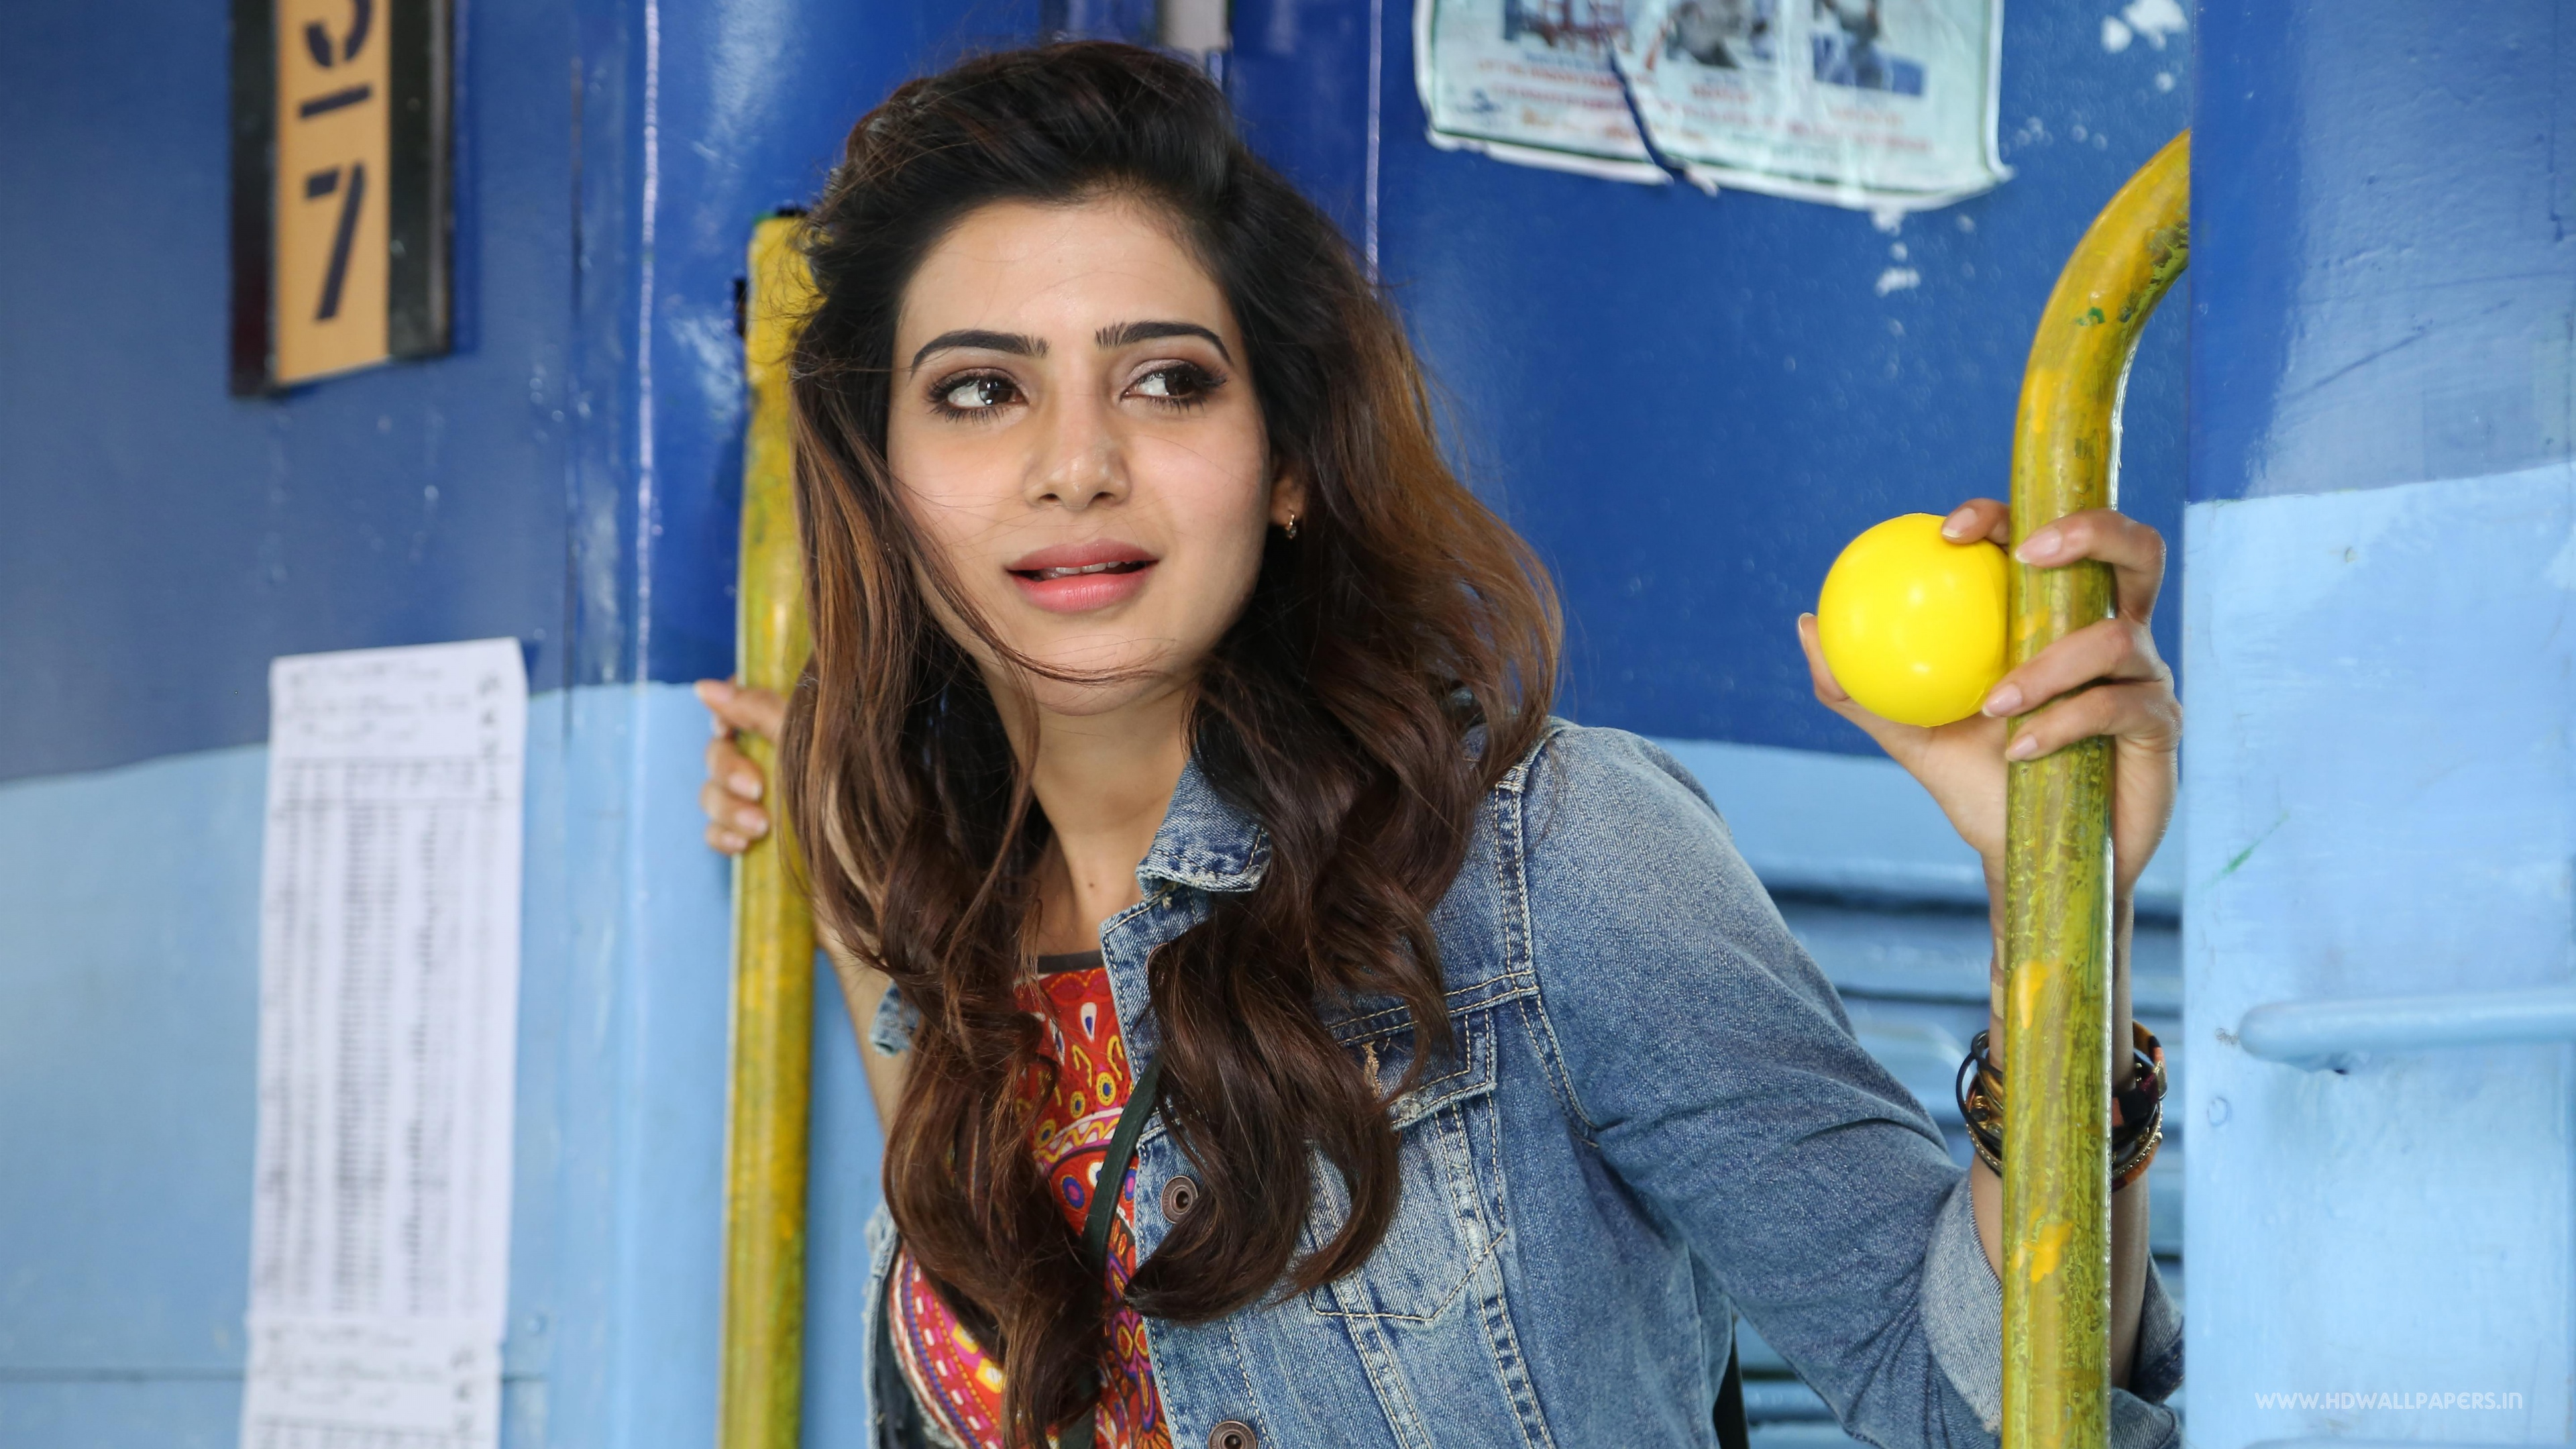 Samantha A Aa 2016 Telugu Wallpapers In Jpg Format For Free Download